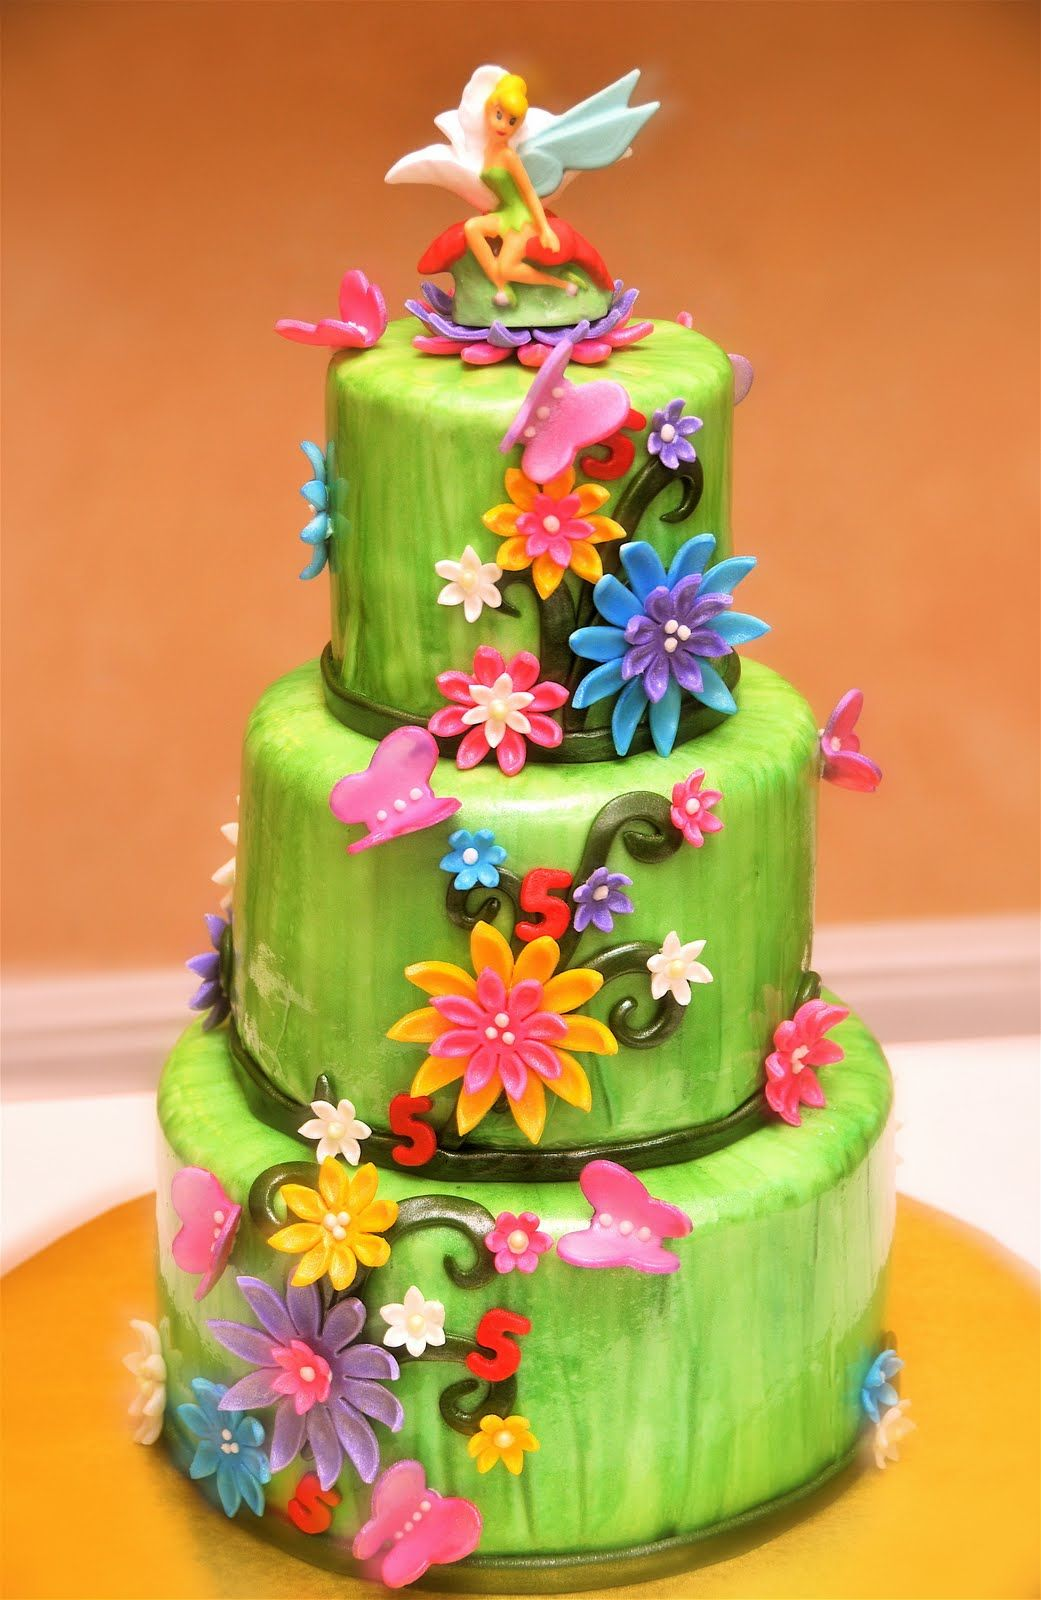 Pixie hollow birthday cakes the adventures of baking decorating and eating cakes by angie - Decoration gateau fee clochette ...